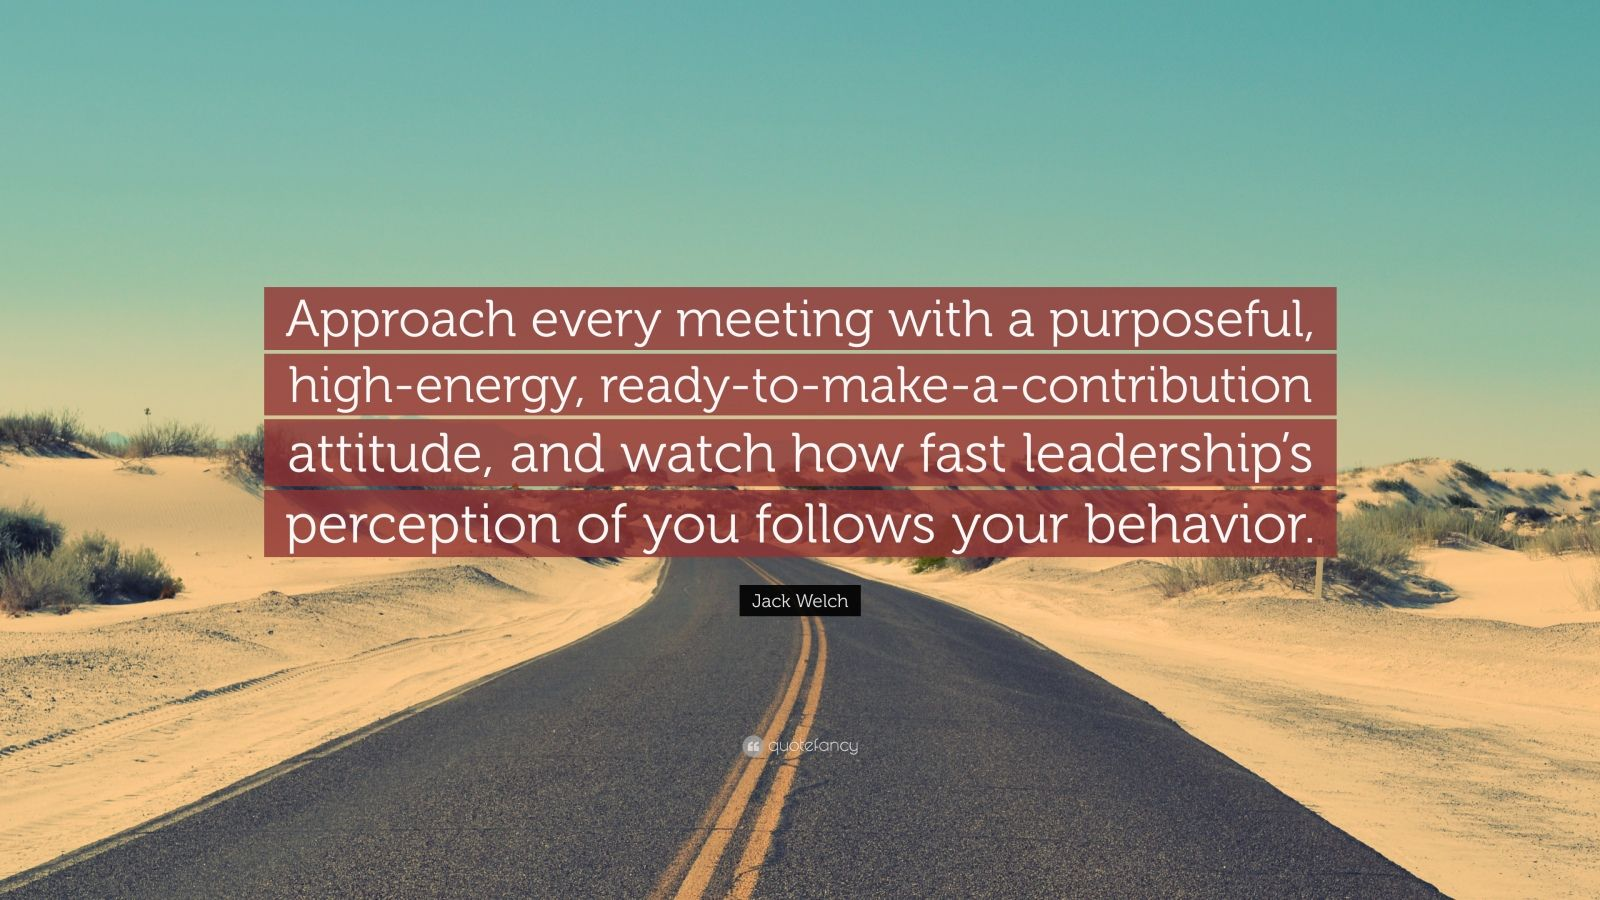 """Jack Welch Quote: """"Approach every meeting with a purposeful, high-energy, ready-to-make-a-contribution attitude, and watch how fast leadership's perception of you follows your behavior."""""""